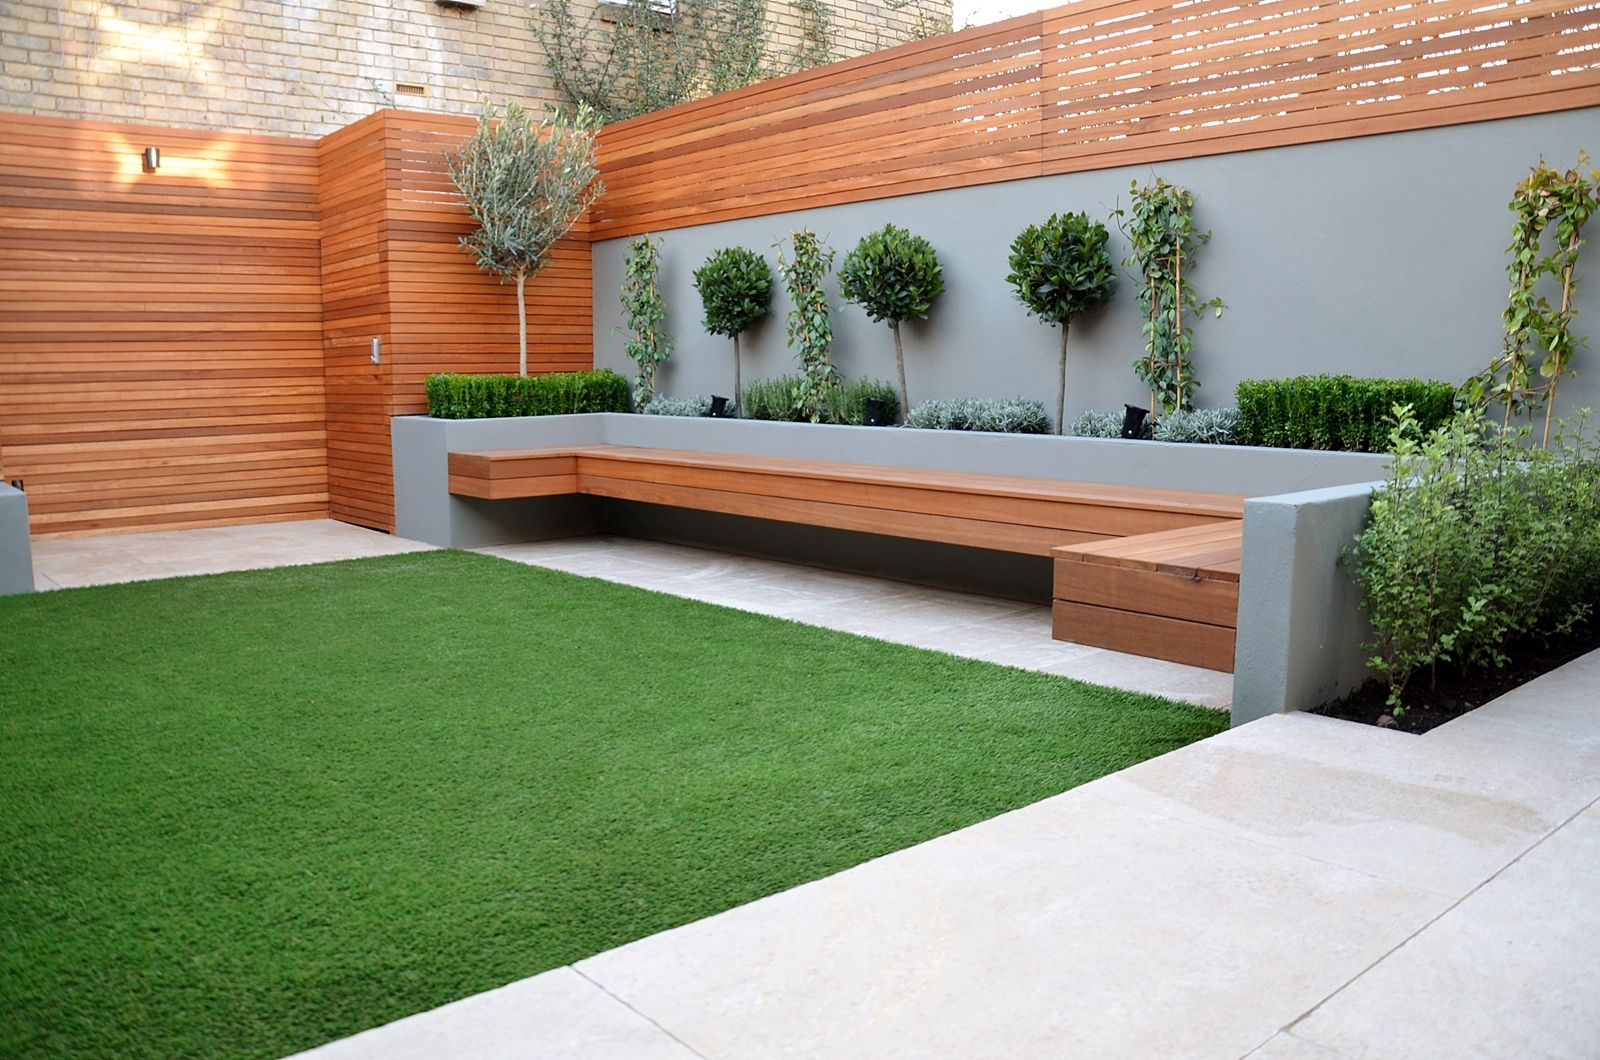 Modern low maintenance garden design clapham london for Contemporary garden designs and ideas